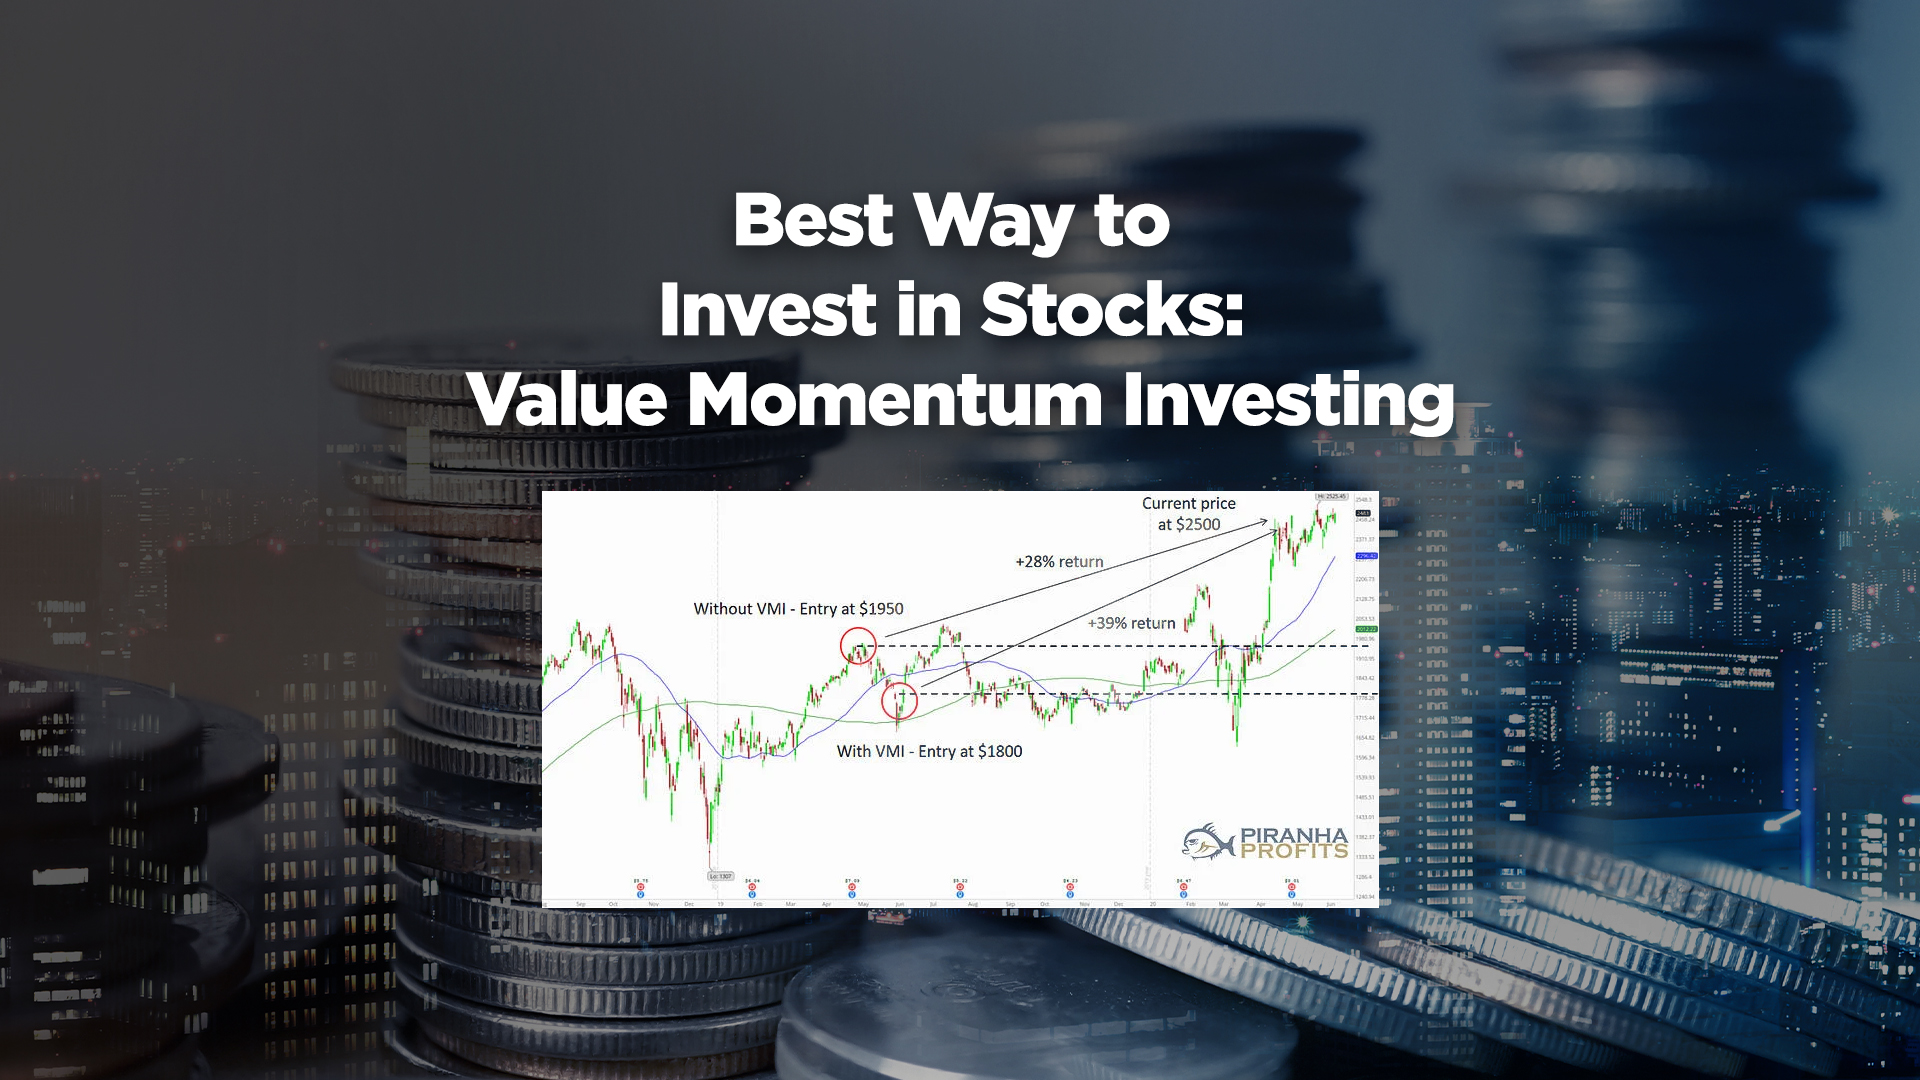 Best Way to Invest in Stocks: Value Momentum Investing